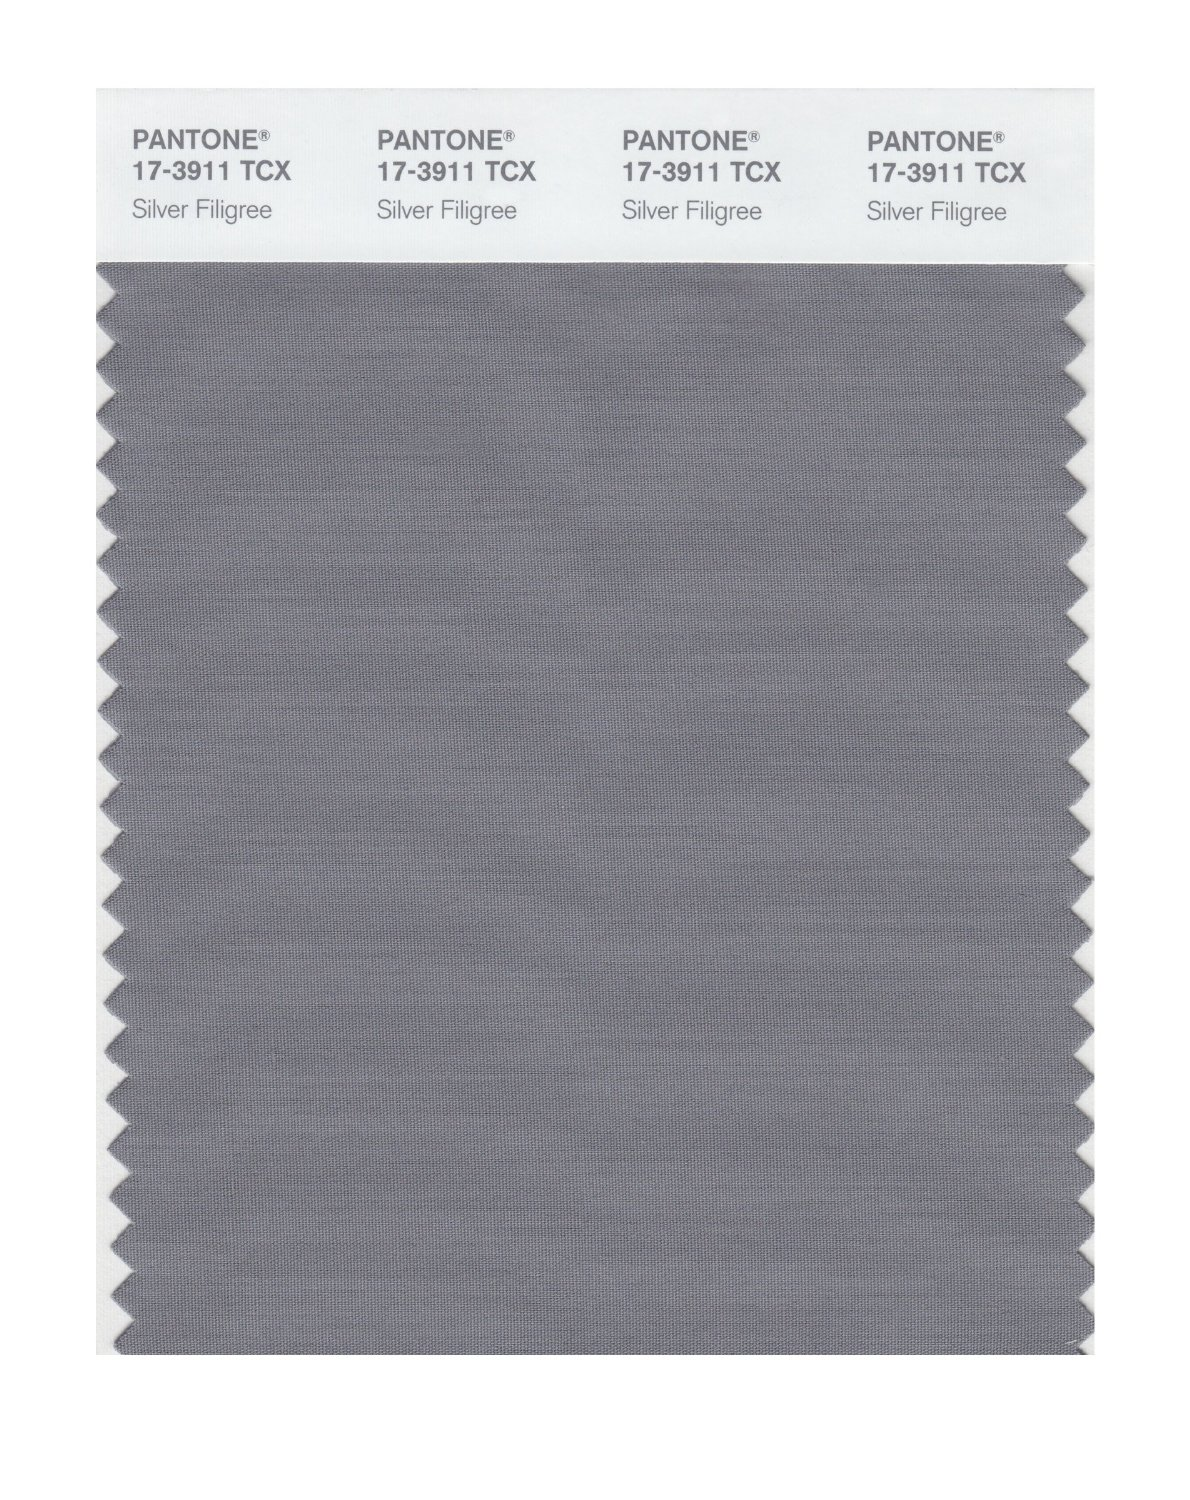 Pantone Smart Swatch 17-3911 Silver Filigree